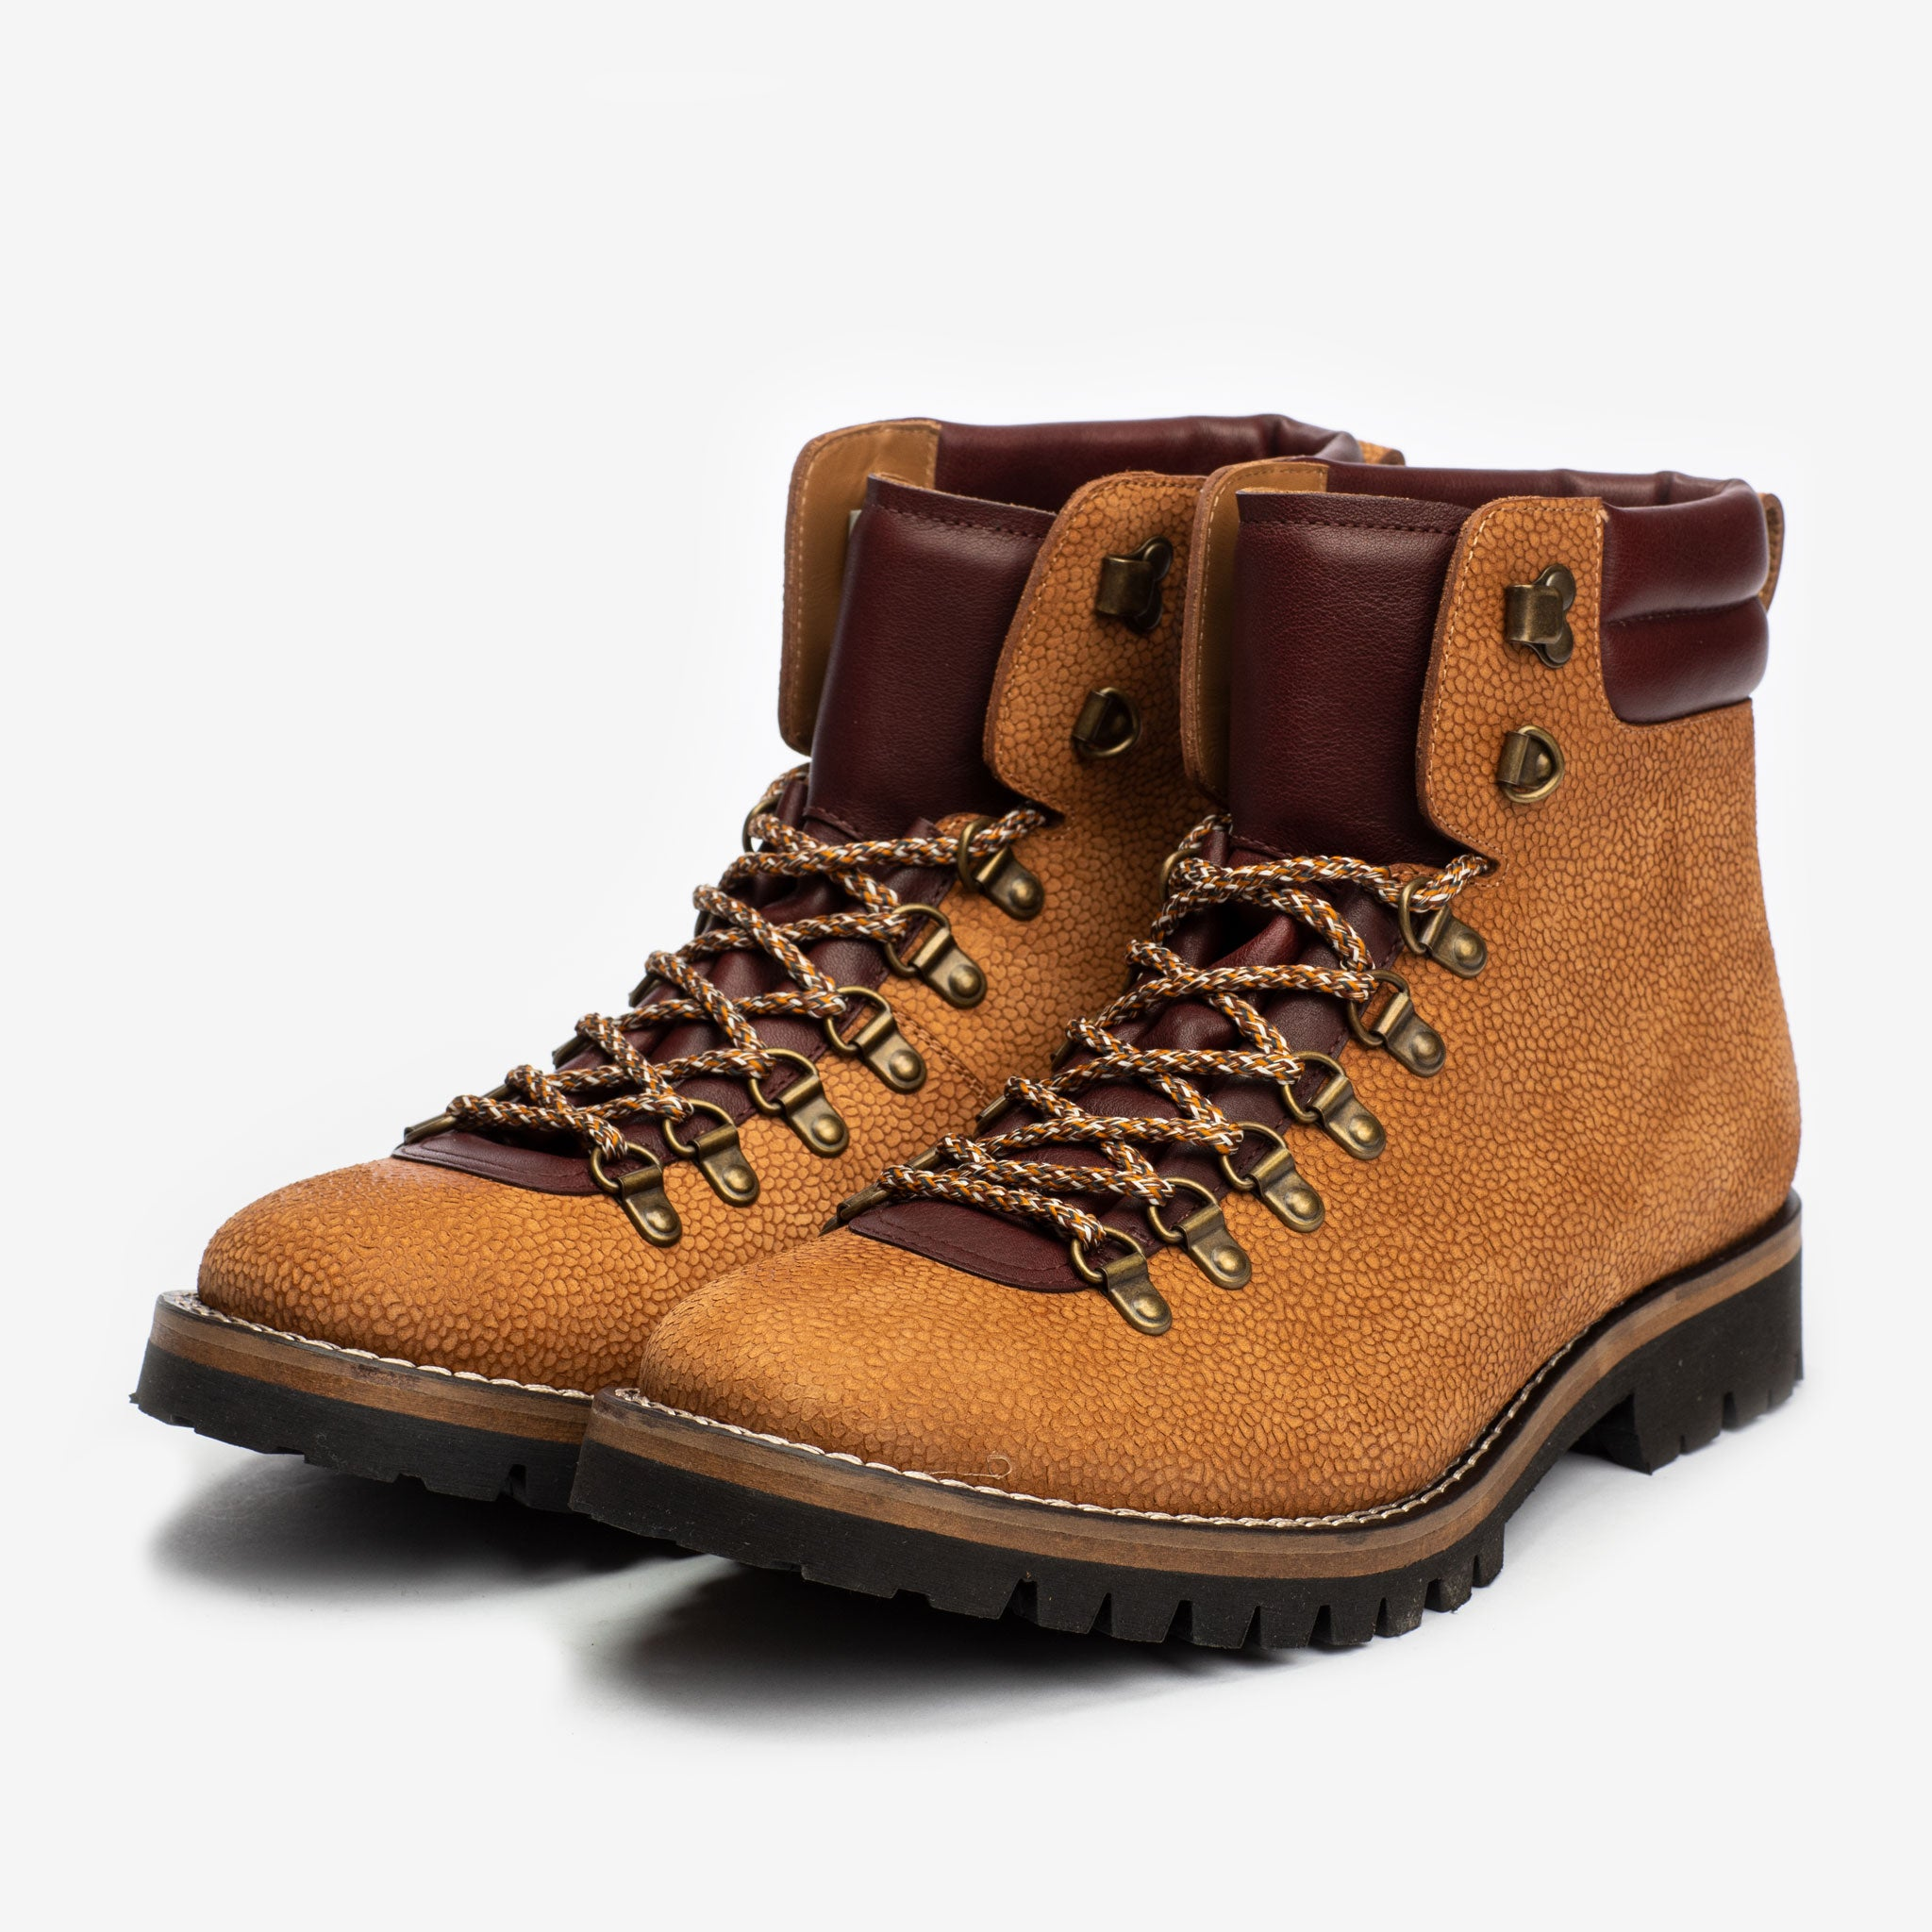 The Viking Boot in Coach